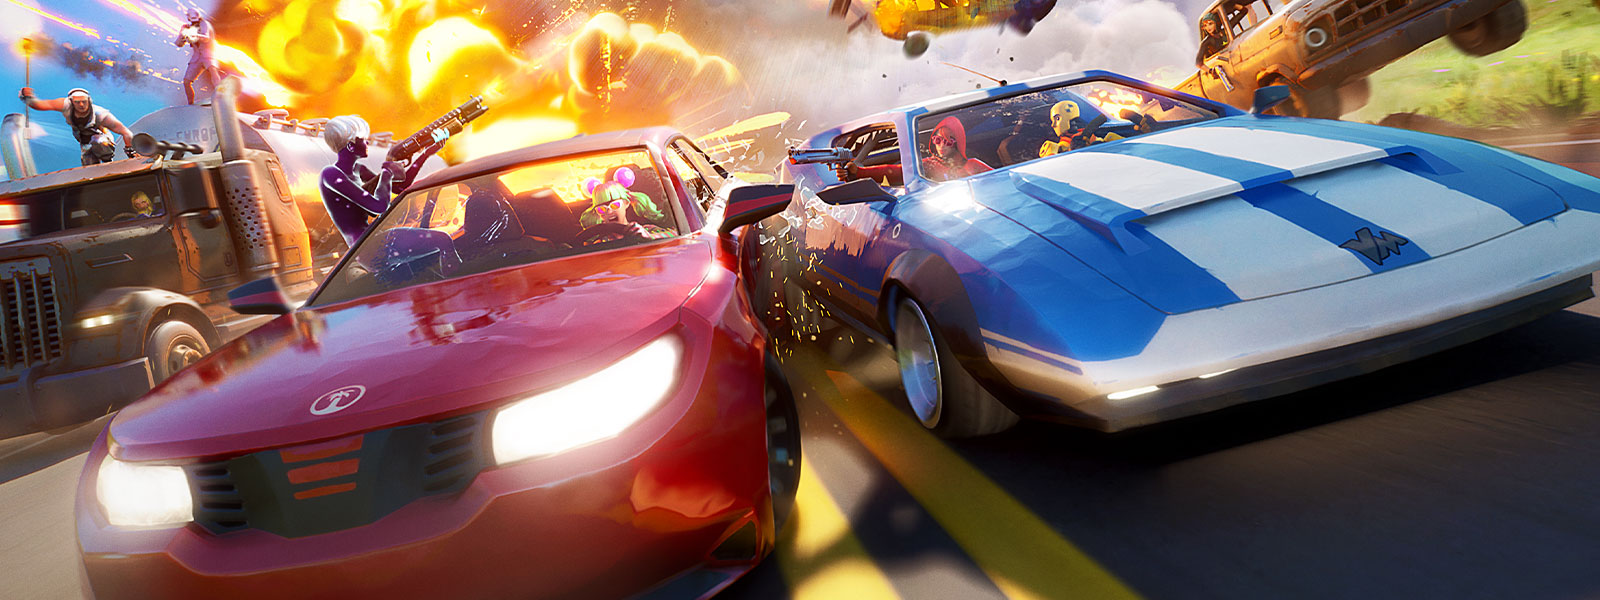 Fortnite characters drive side by side in race cars, against an explosion in the background.